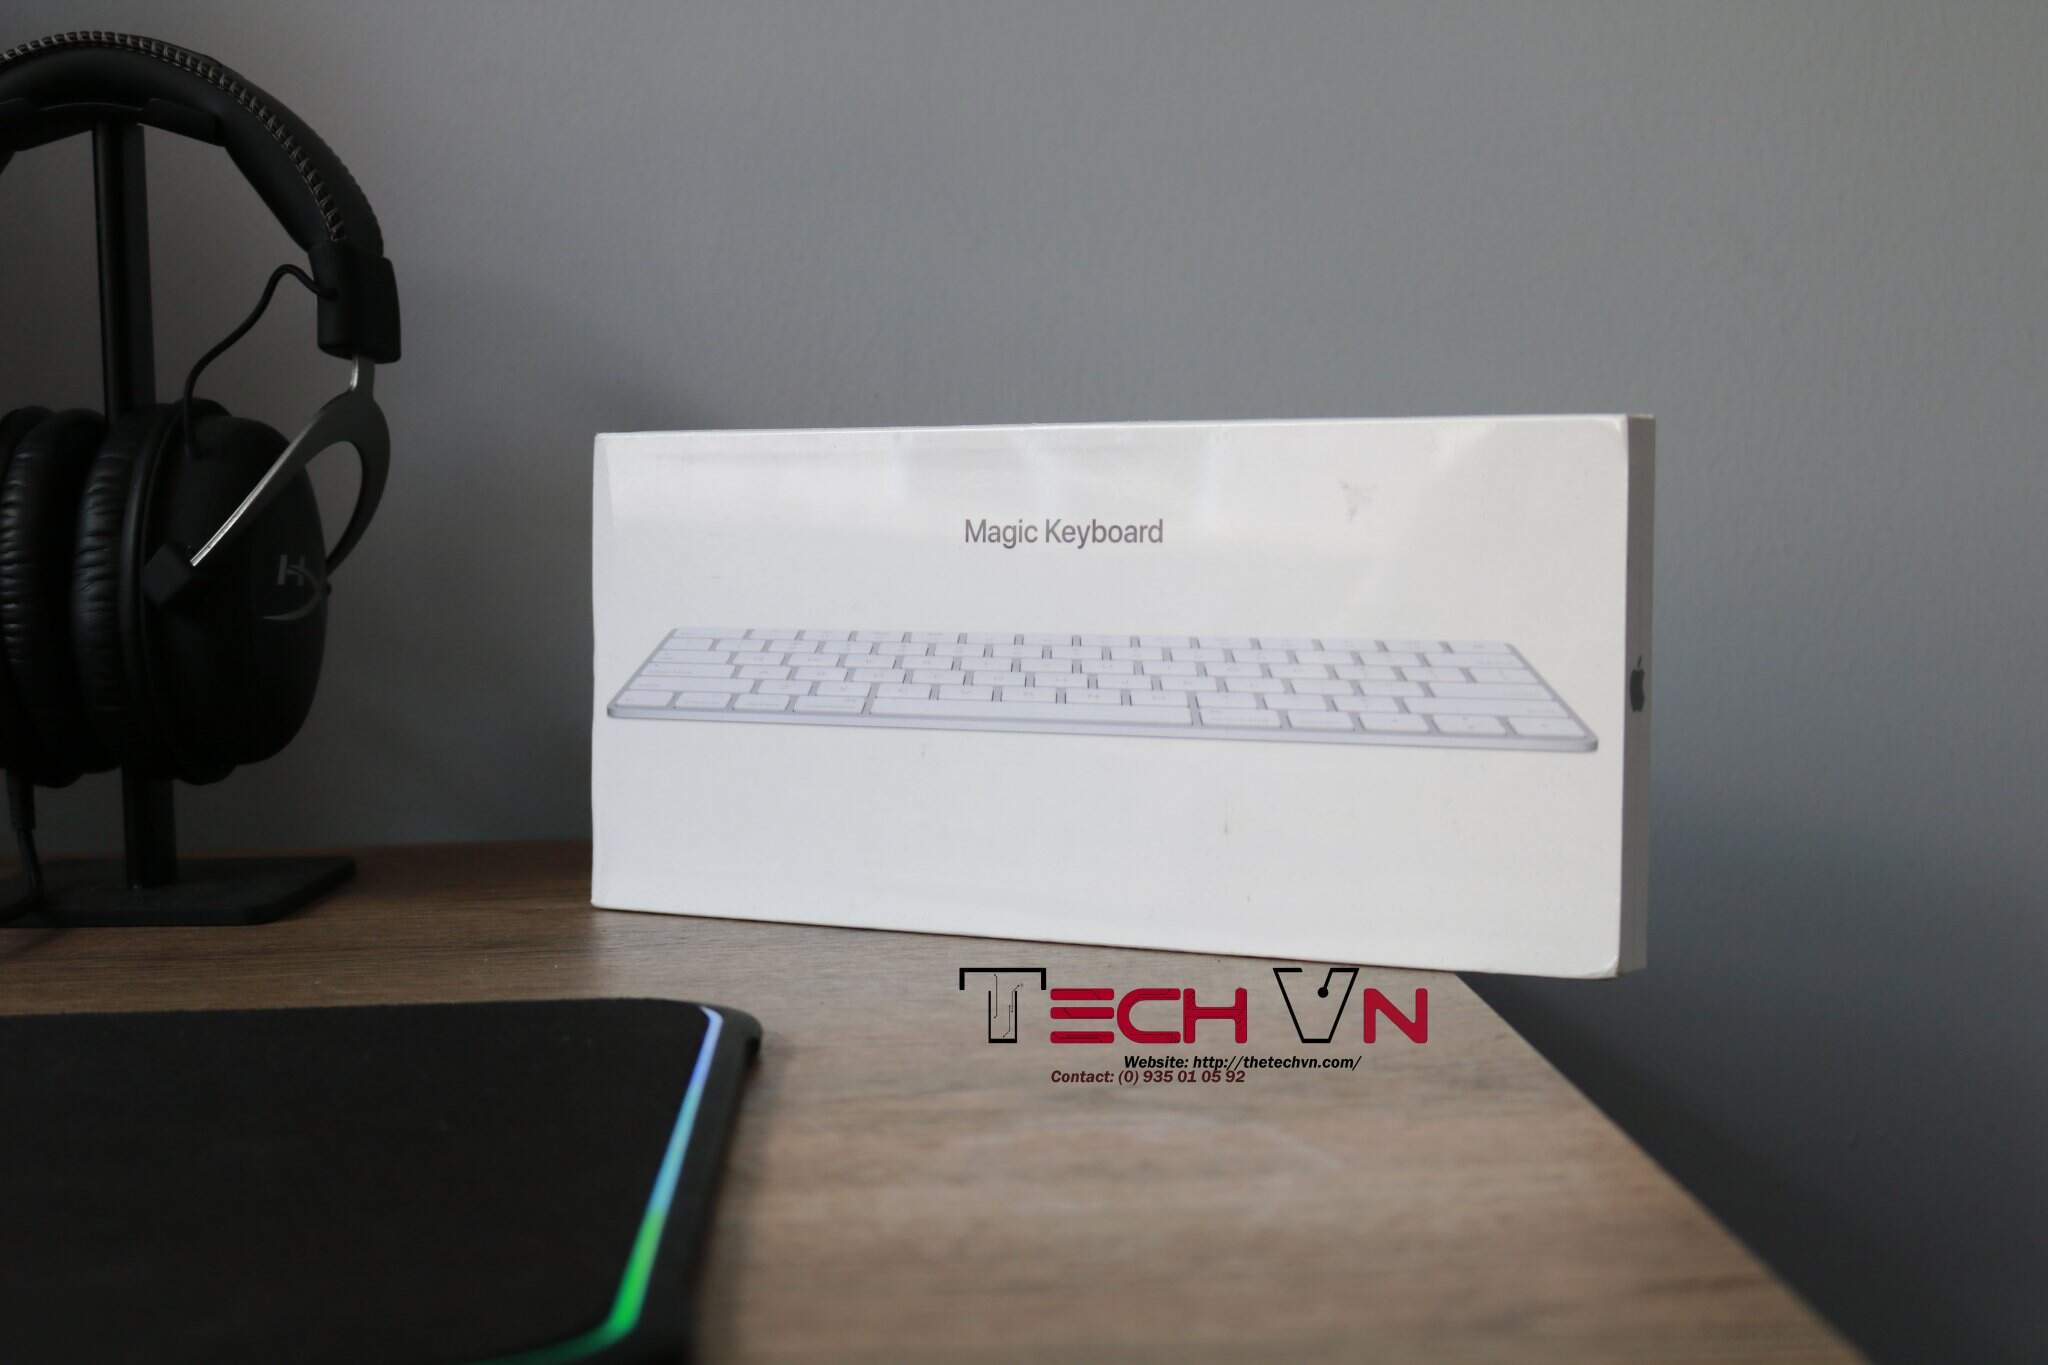 Techvn Apple Magic Keyboard 2 01.jpg